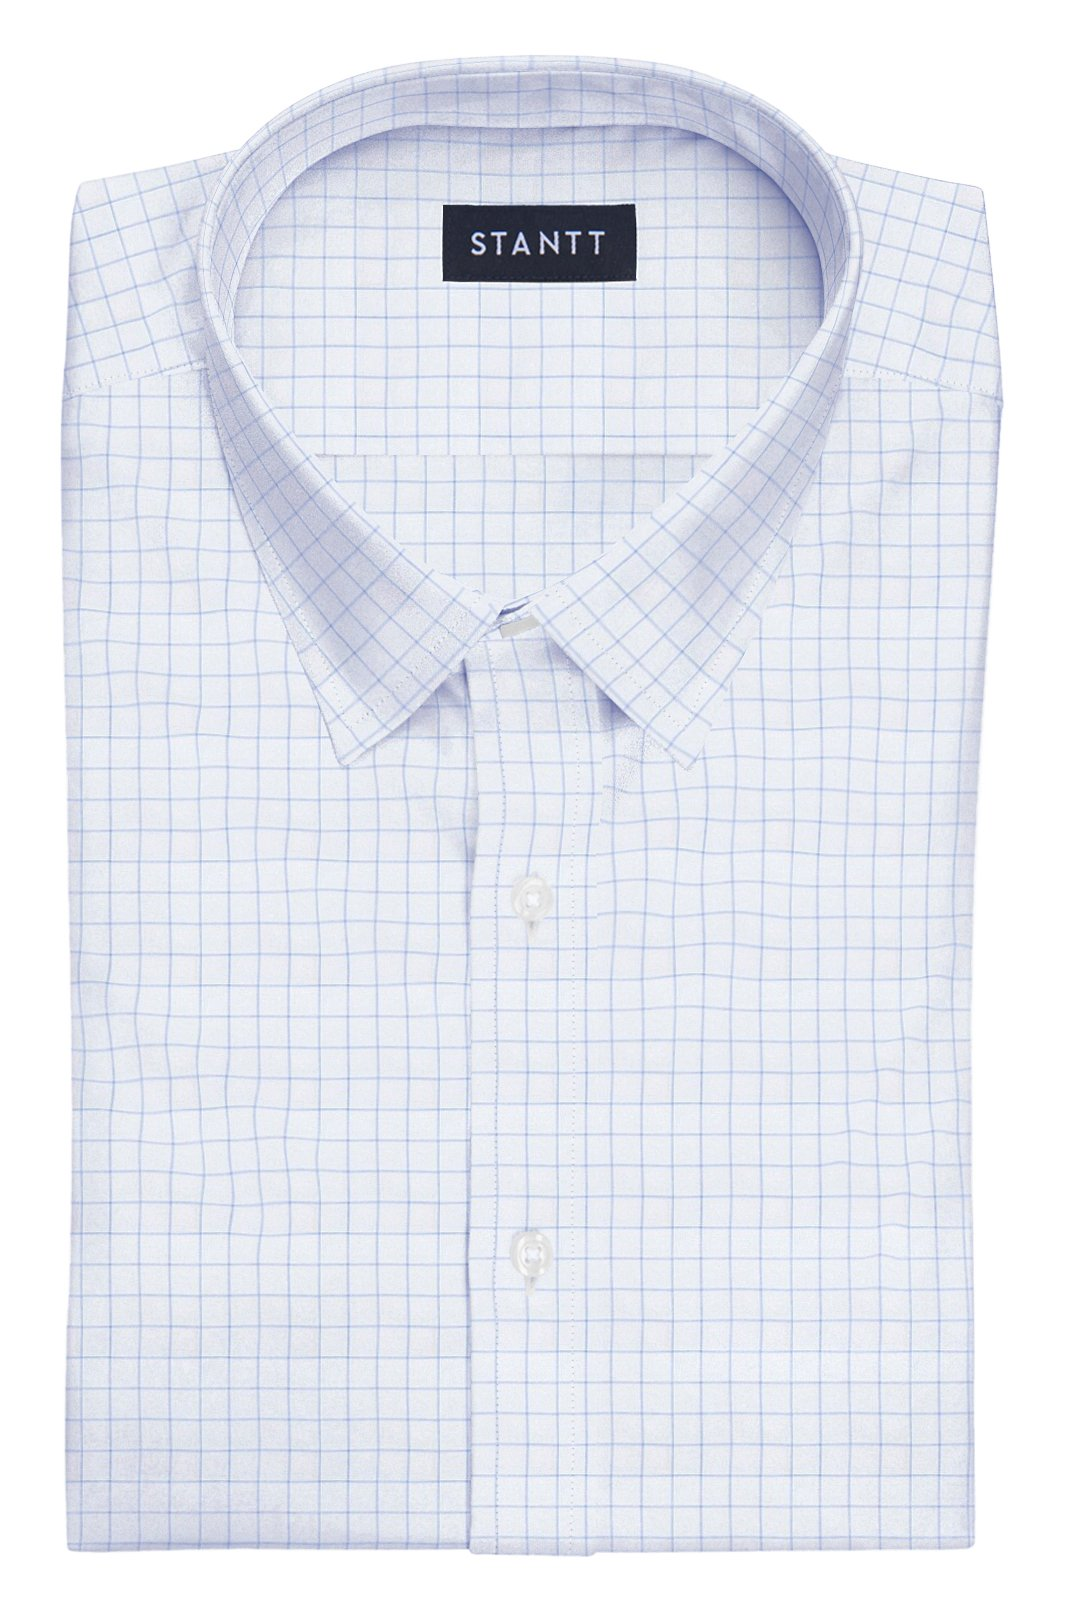 Blue Hairline Windowpane: Semi-Spread Collar, Barrel Cuff